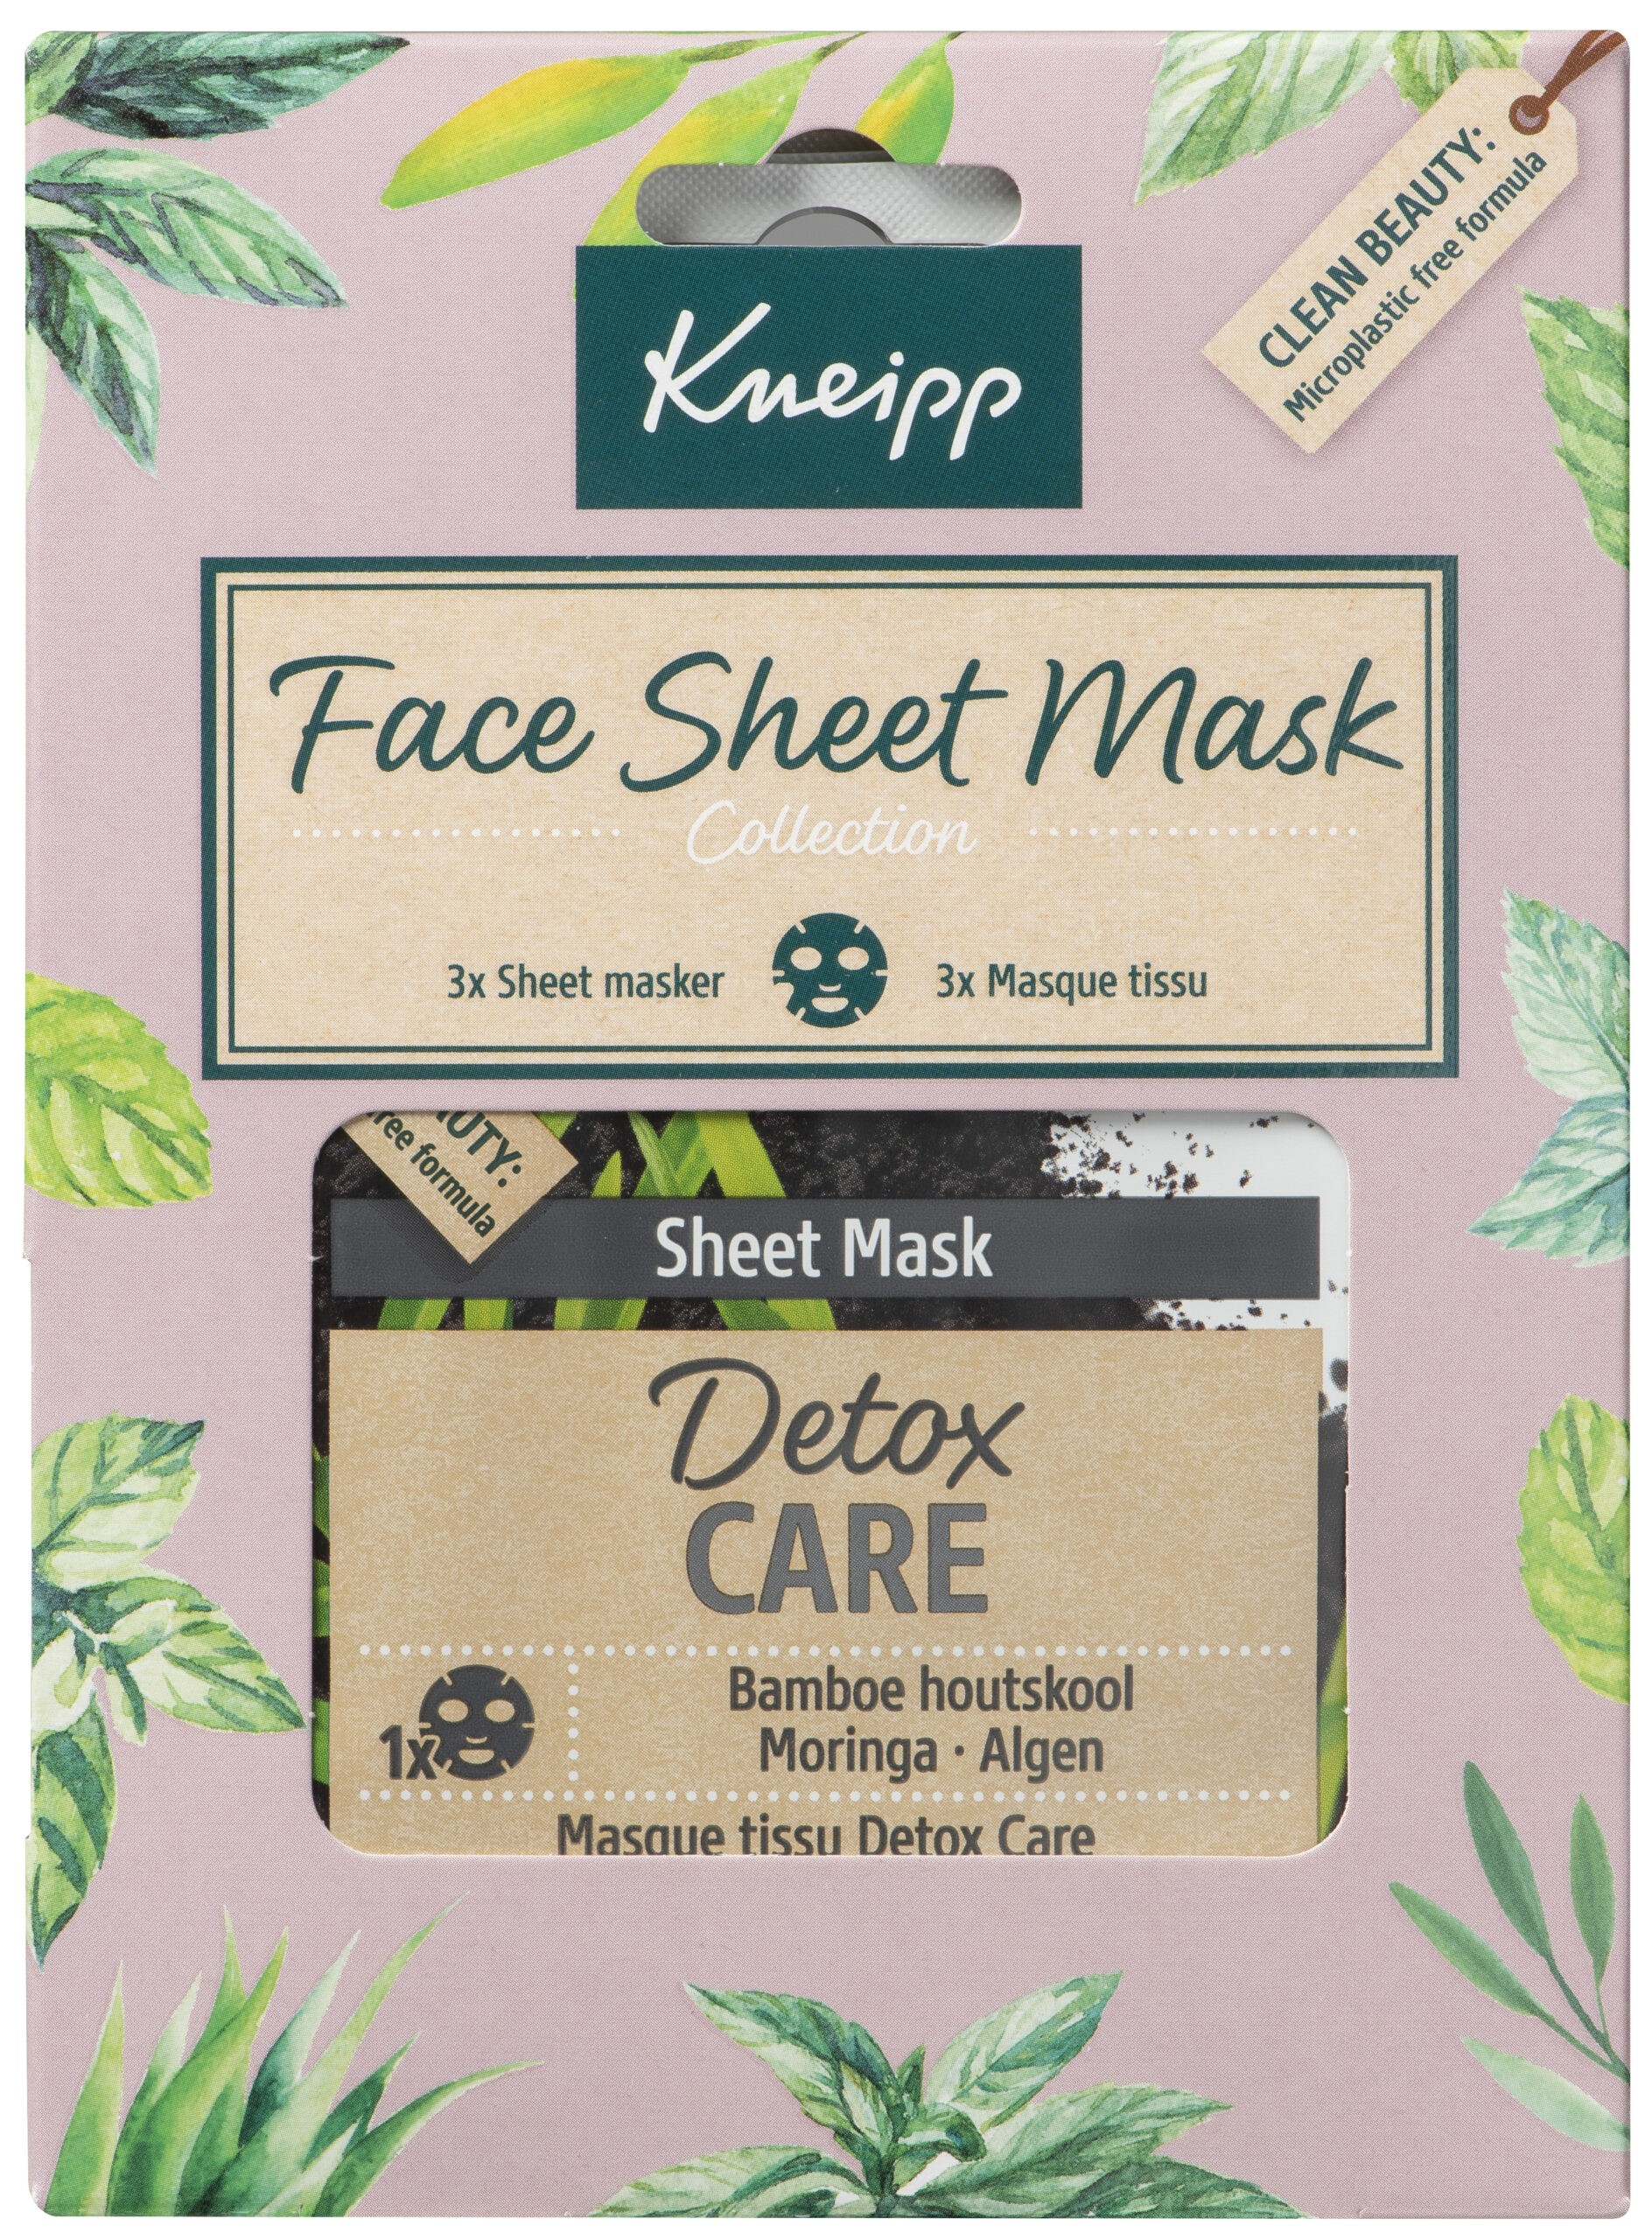 kneipp face sheet mask collection